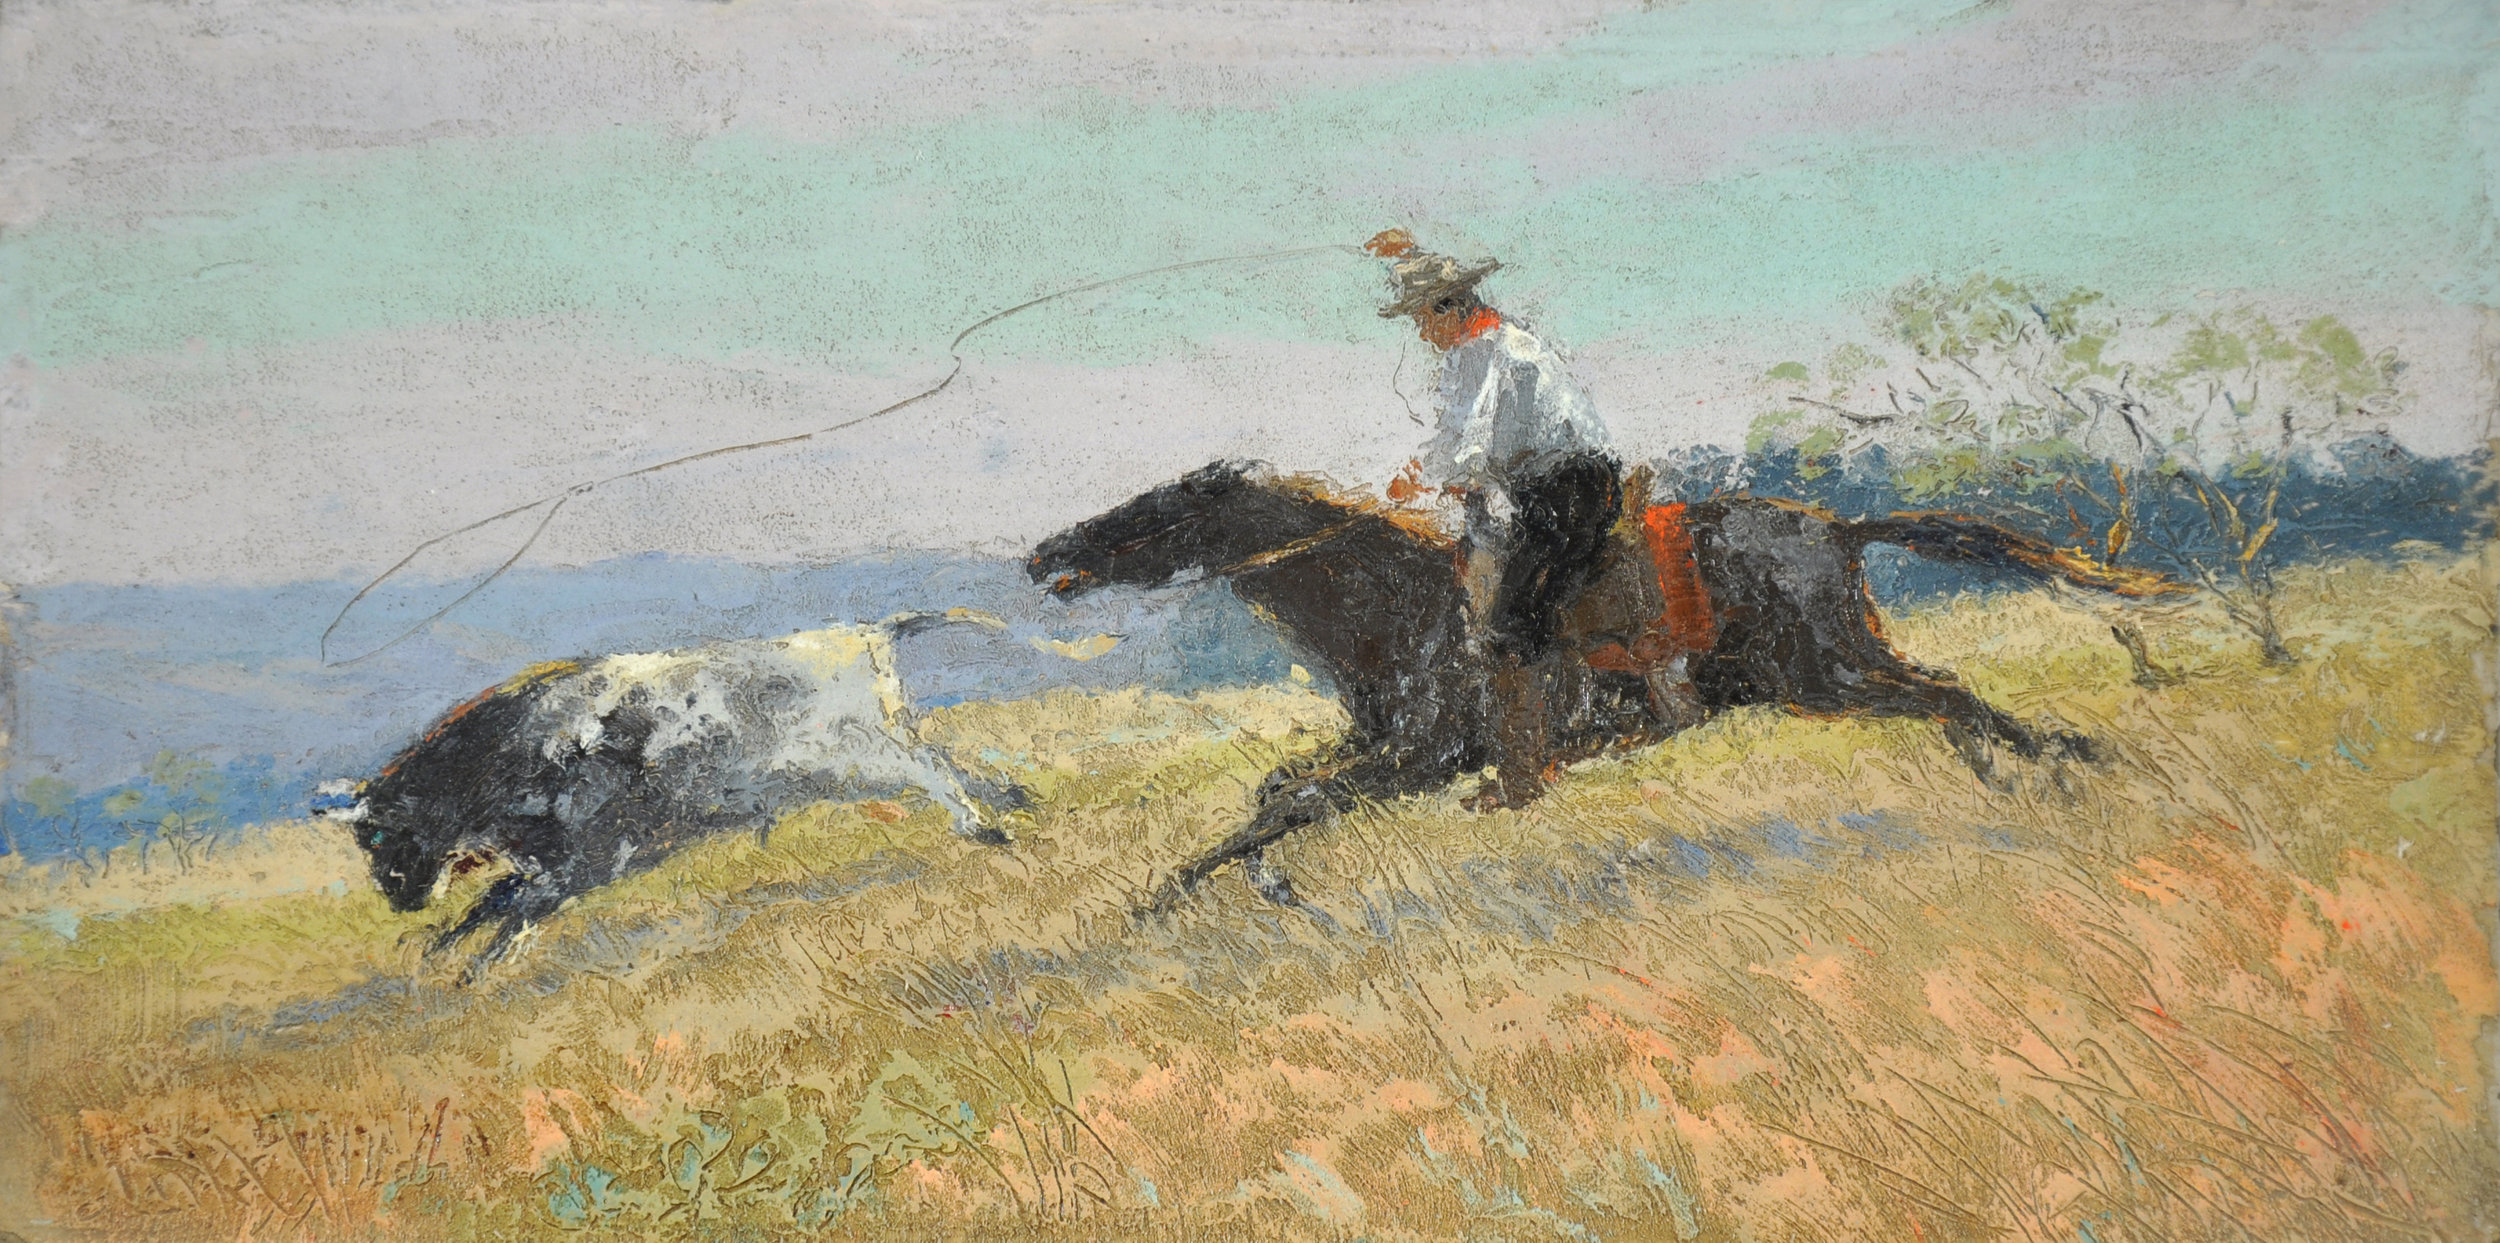 L.O. Griffith, Untitled (Cowboy and Steer), n.d., oil on canvas